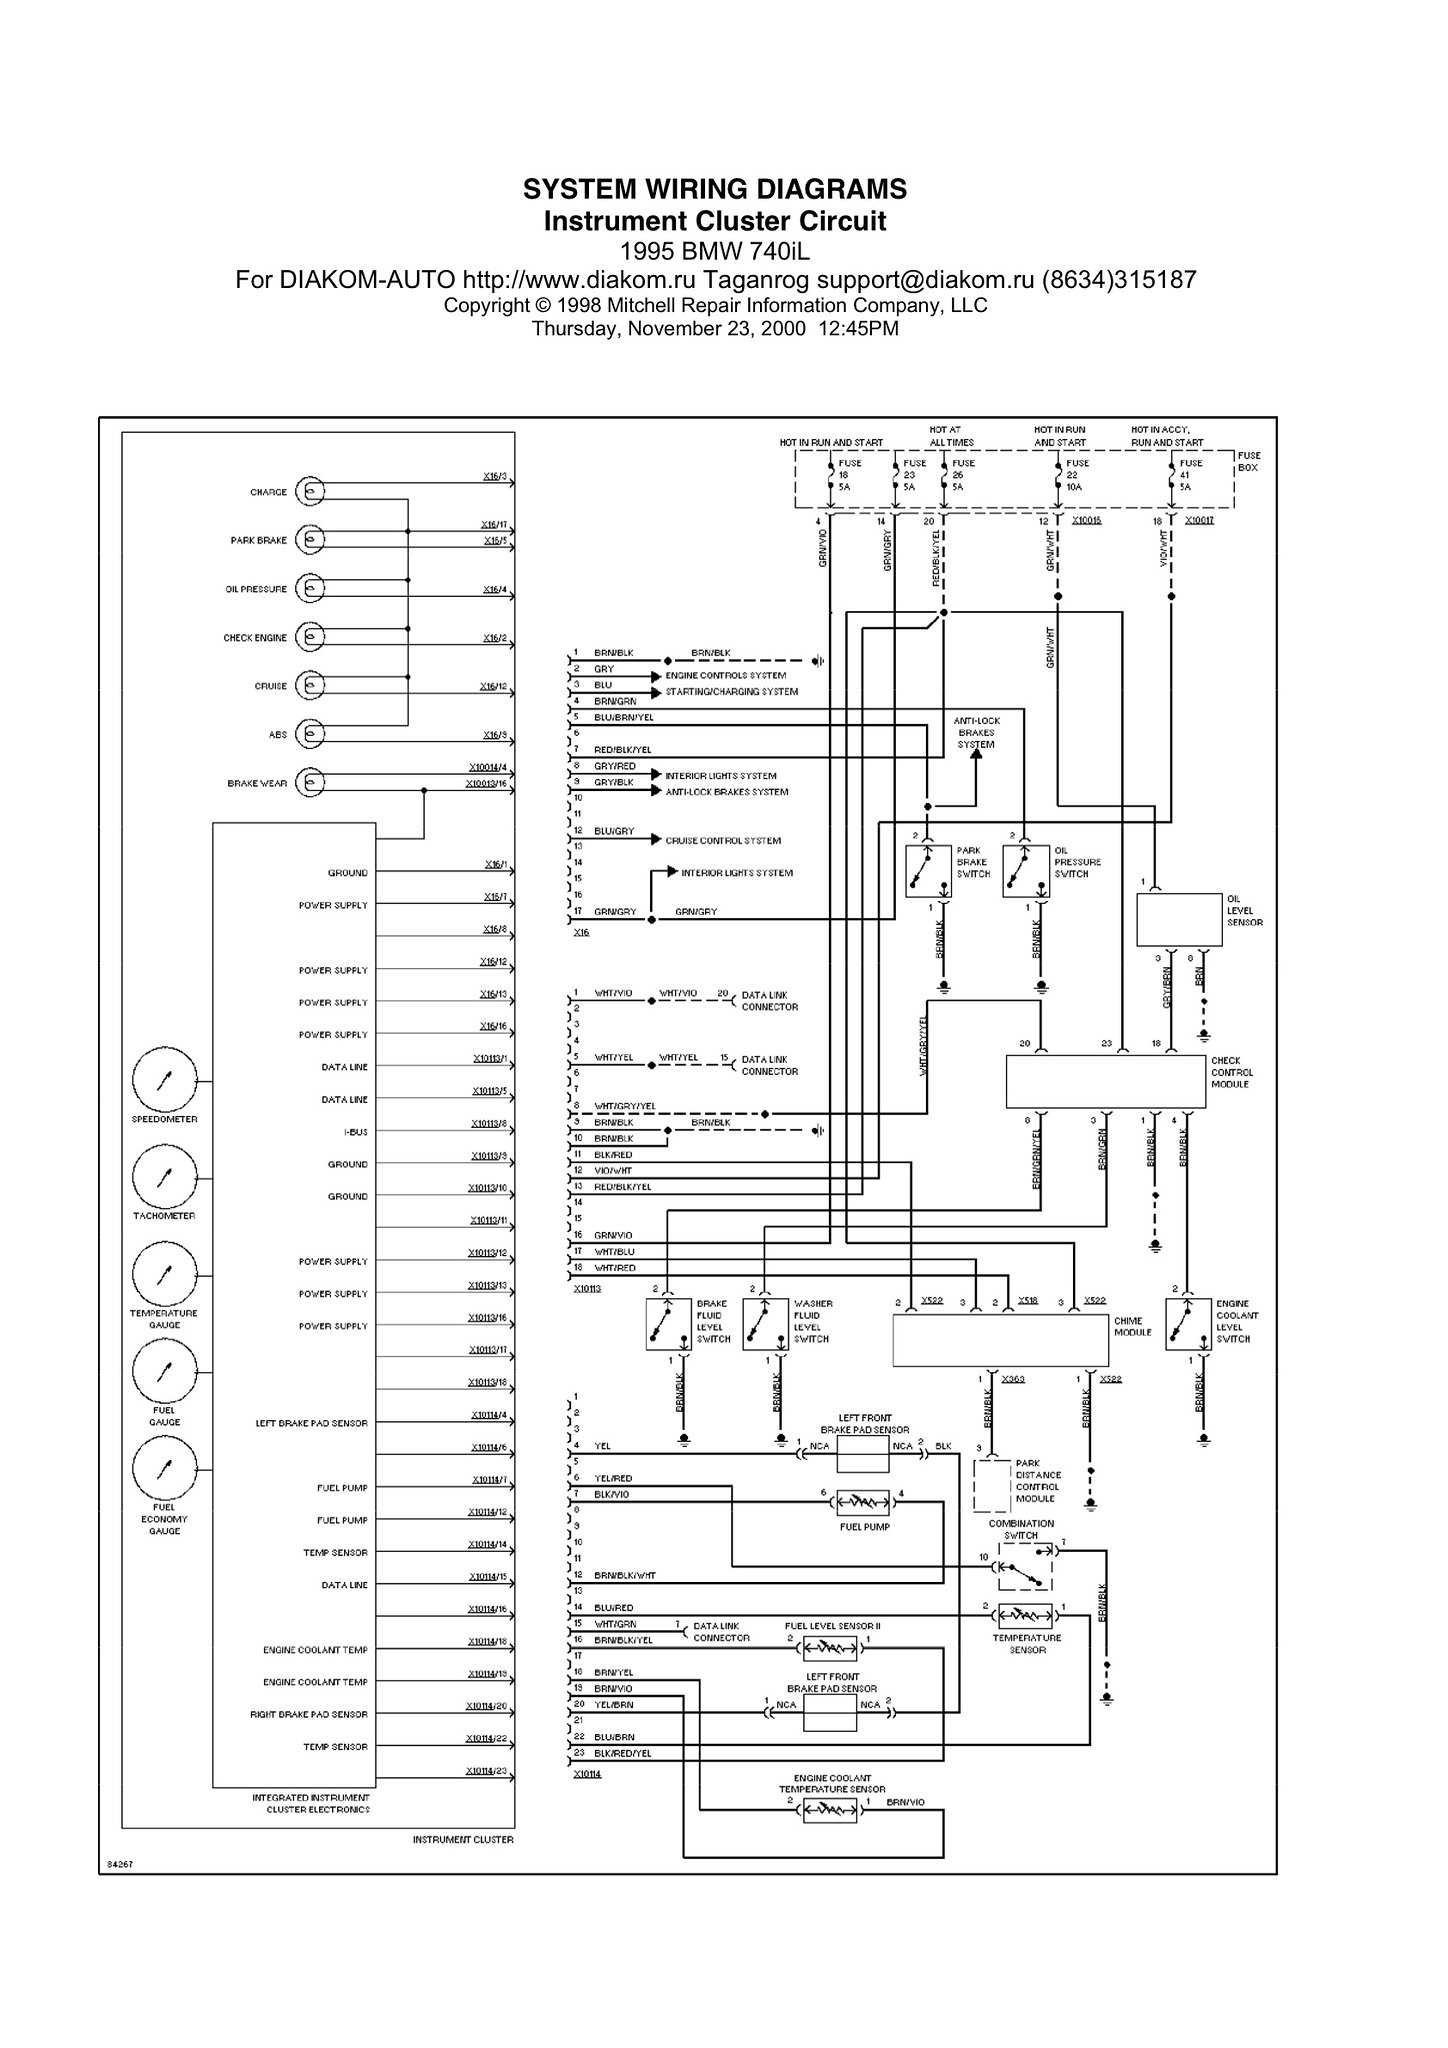 7703585142_dbc4ceb414_k how to power on e39 cluster out of car? e39 wiring diagram at edmiracle.co